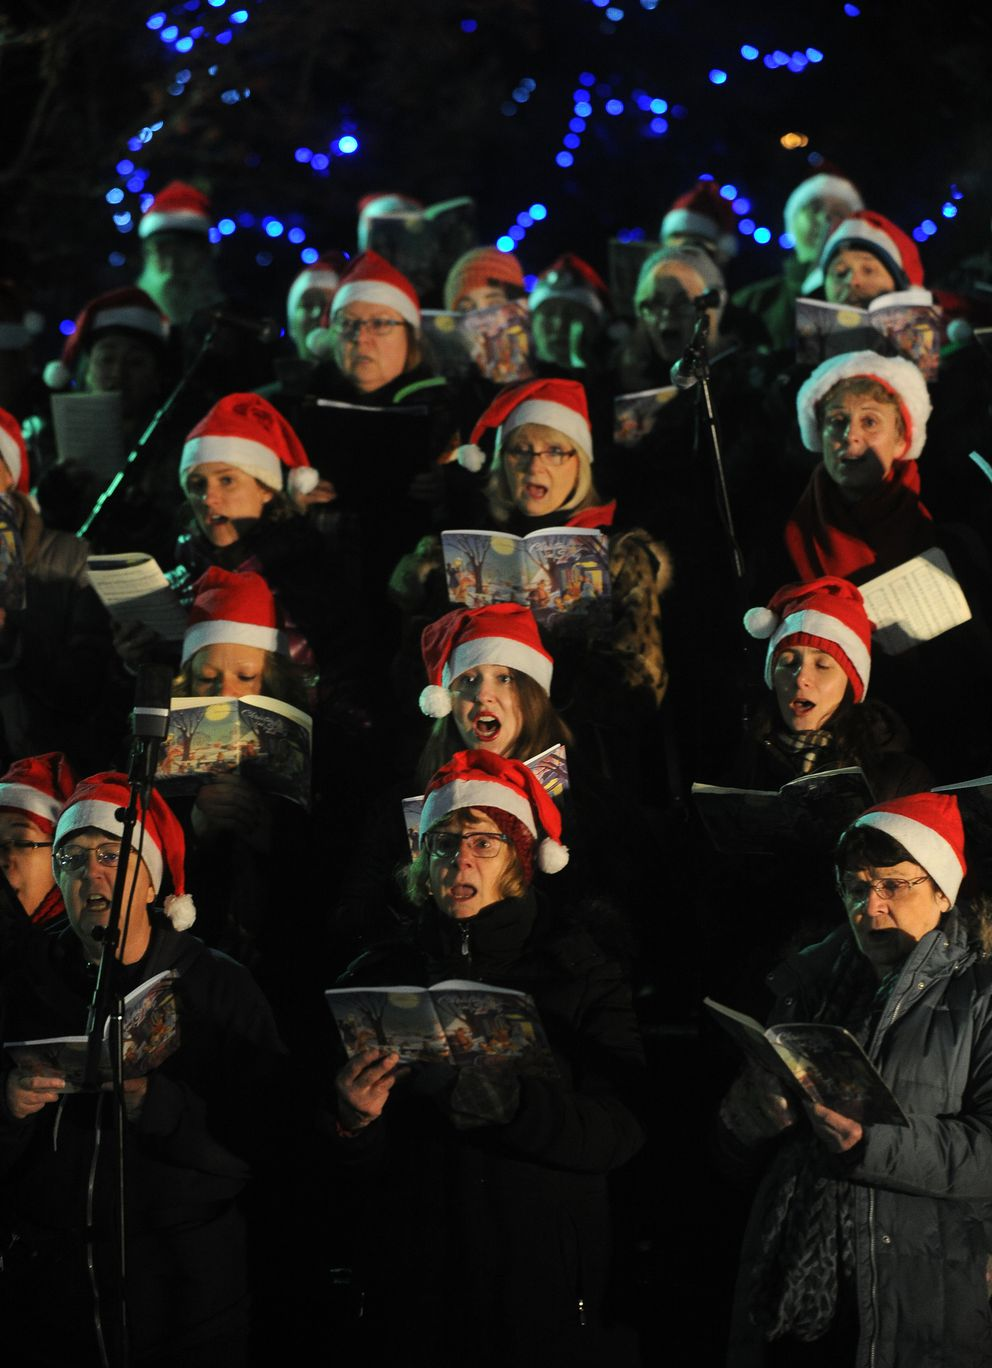 The Anchorage Concert Chorus sings before Santa Claus arrived at Town Square Park on his sleigh pulled by his reindeer to light the tree in Town Square Park in downtown Anchorage, Alaska, on Friday, November 25, 2016. The Holiday Tree Lighting Ceremony also featured singers, dancers. (Bob Hallinen / Alaska Dispatch News)